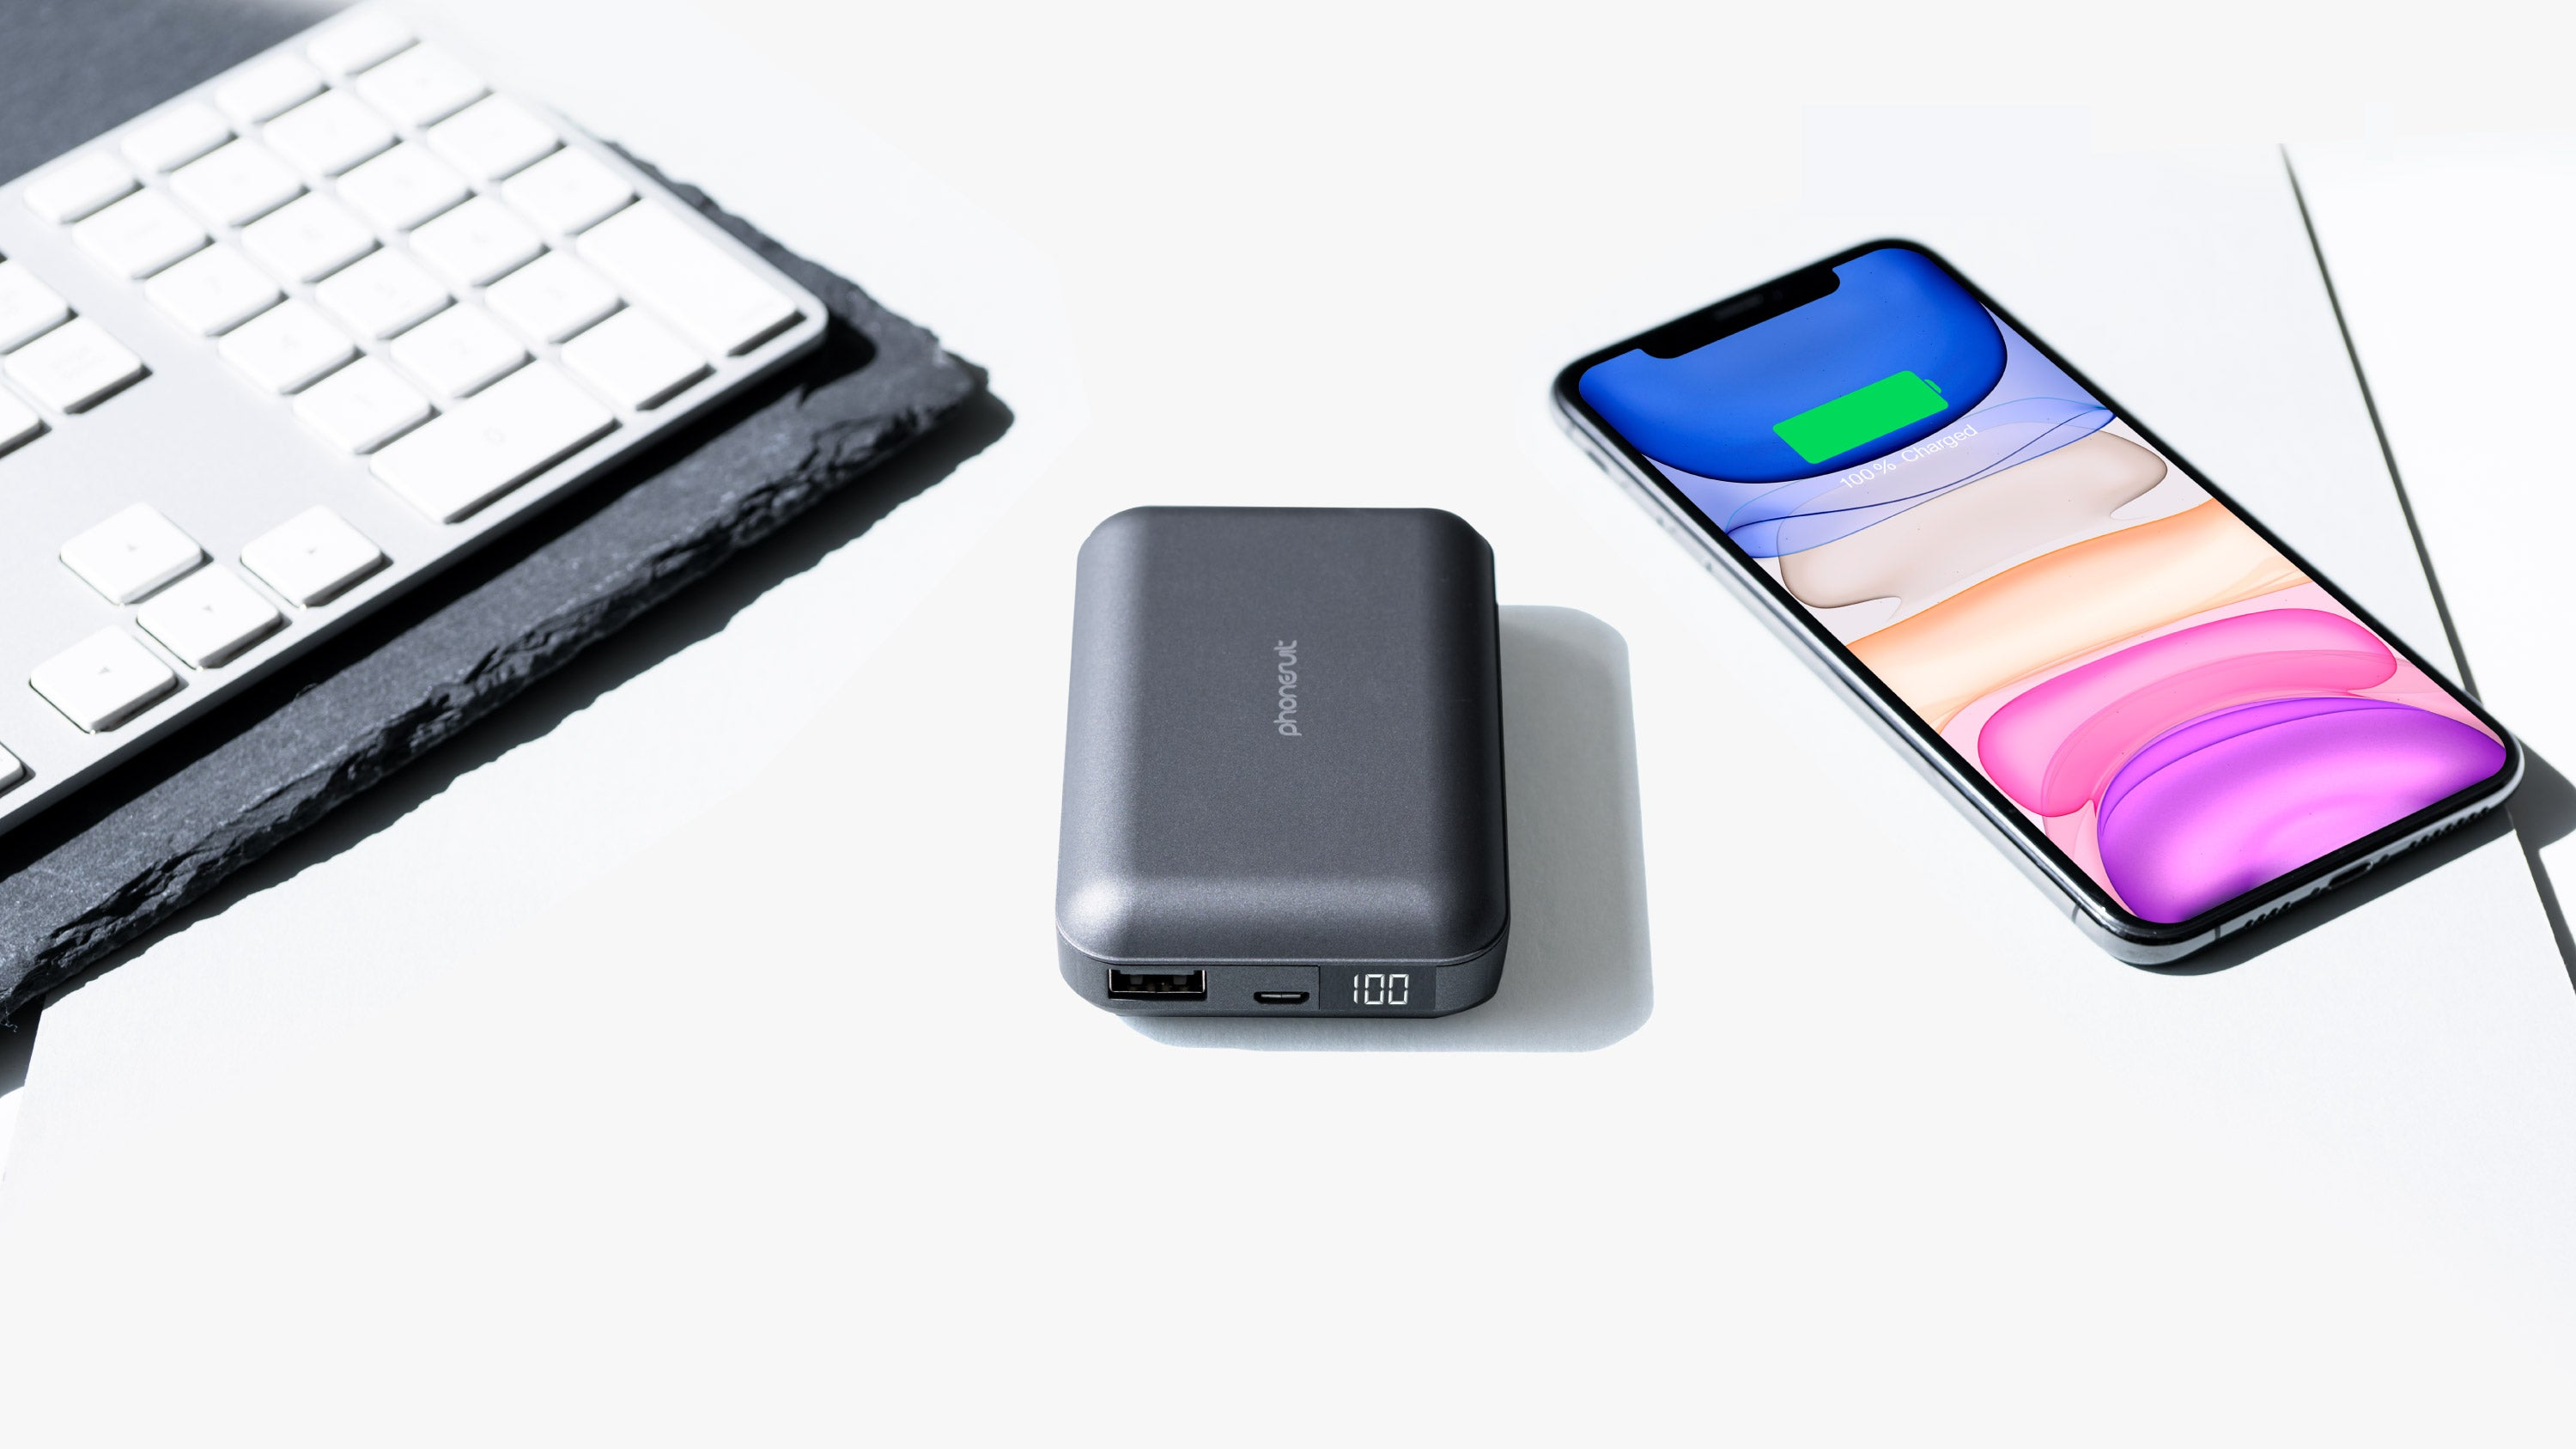 Energy Core LCD Battery Pack 10,000 mAh for iPhone, Samsung & More